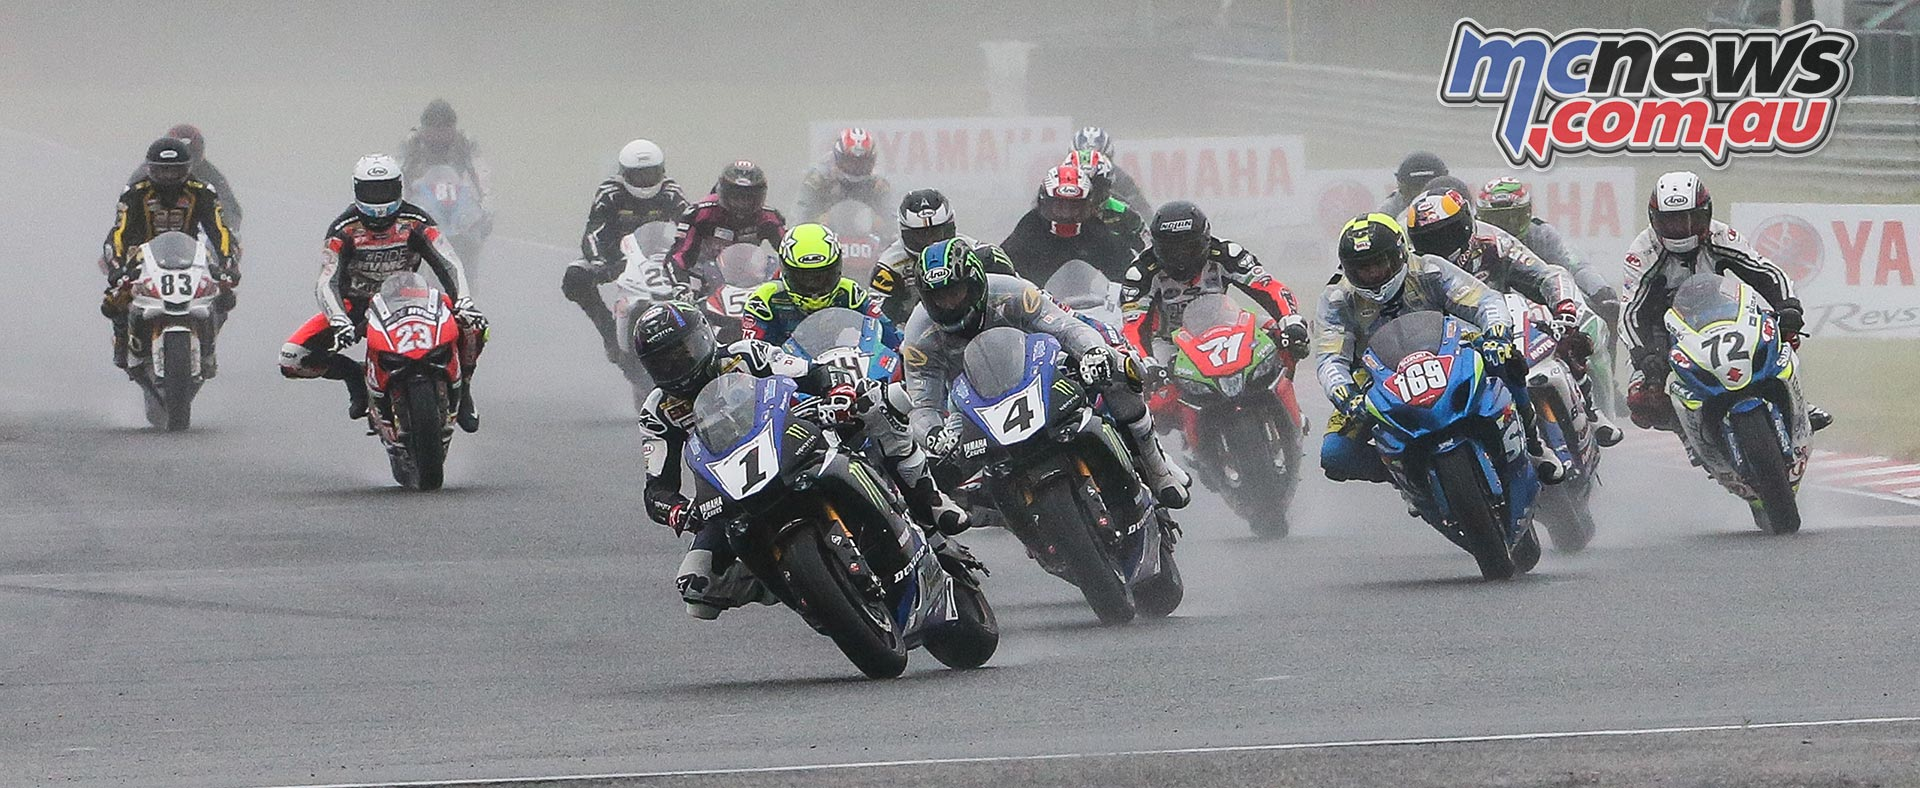 Cameron Beaubier (1) leads Josh Hayes (4), Hayden Gillim (169) and the rest of the Superbike pack in race two at NJMP. Photo by Brian J. Nelson.